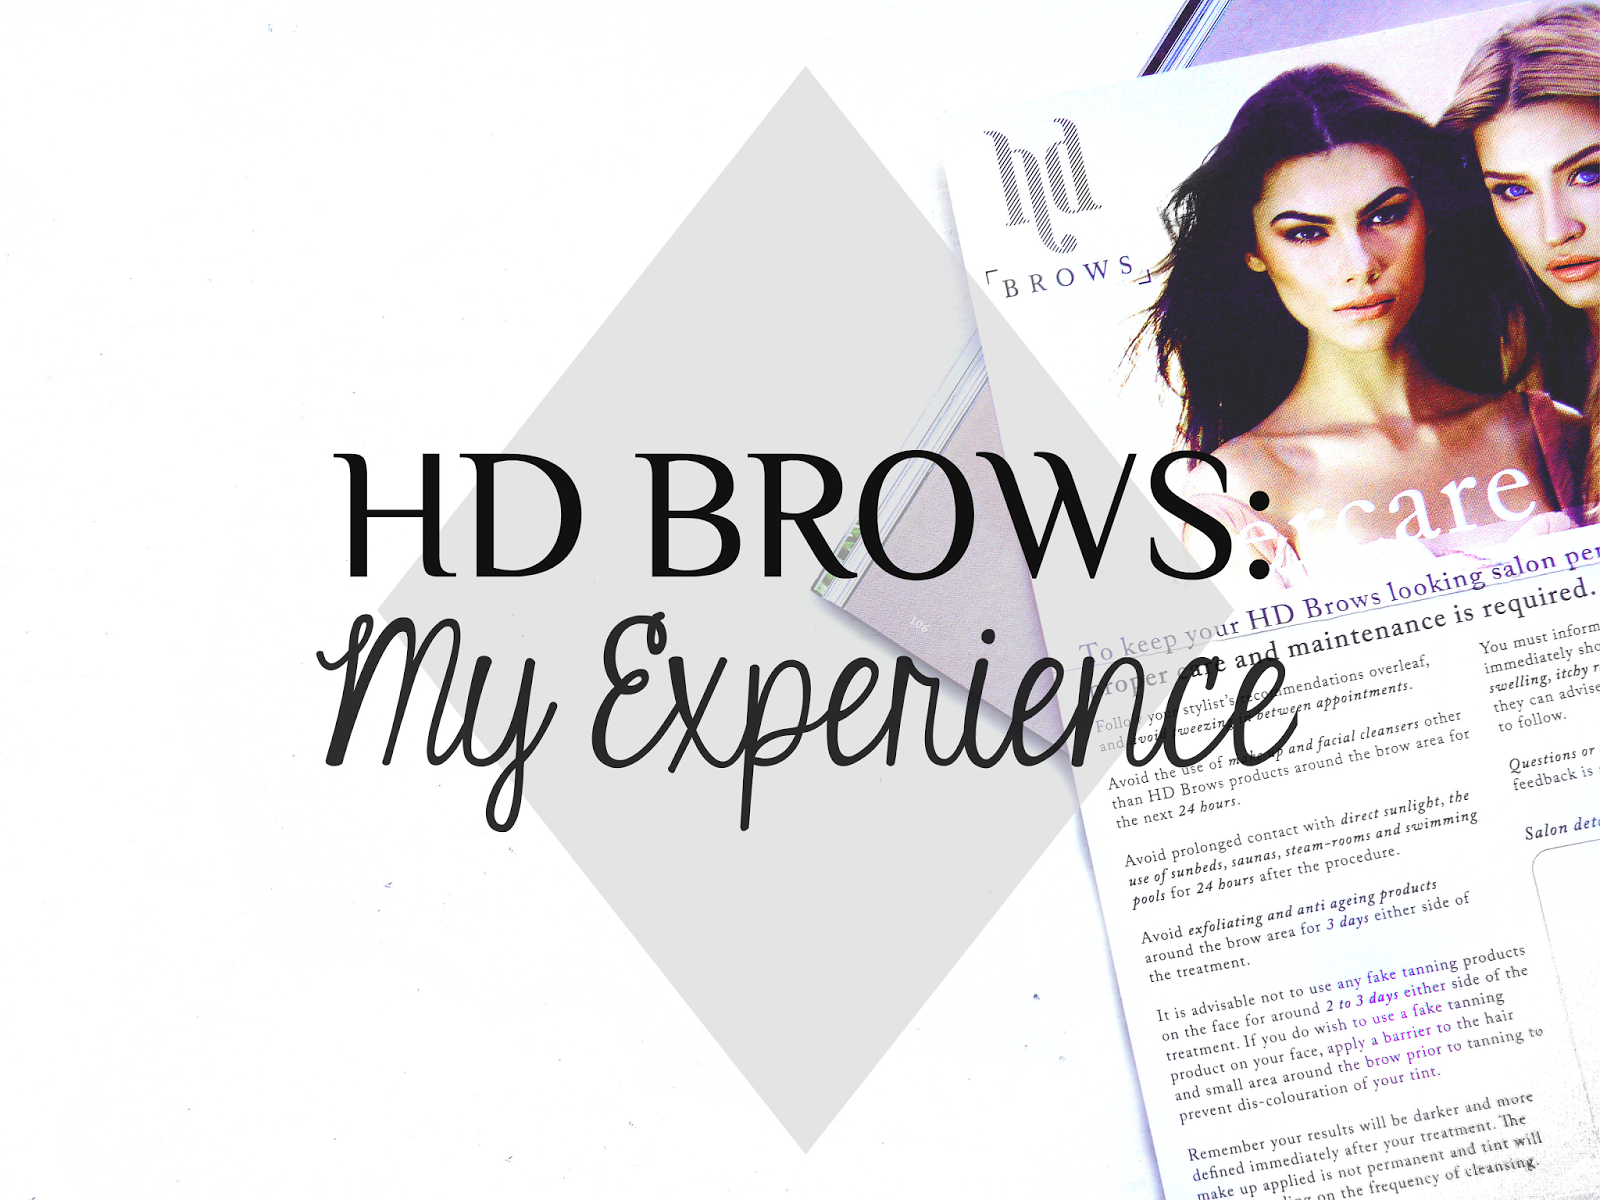 HD brows review is it worth it before and after experience youwishyou 2015 beauty eyebrows